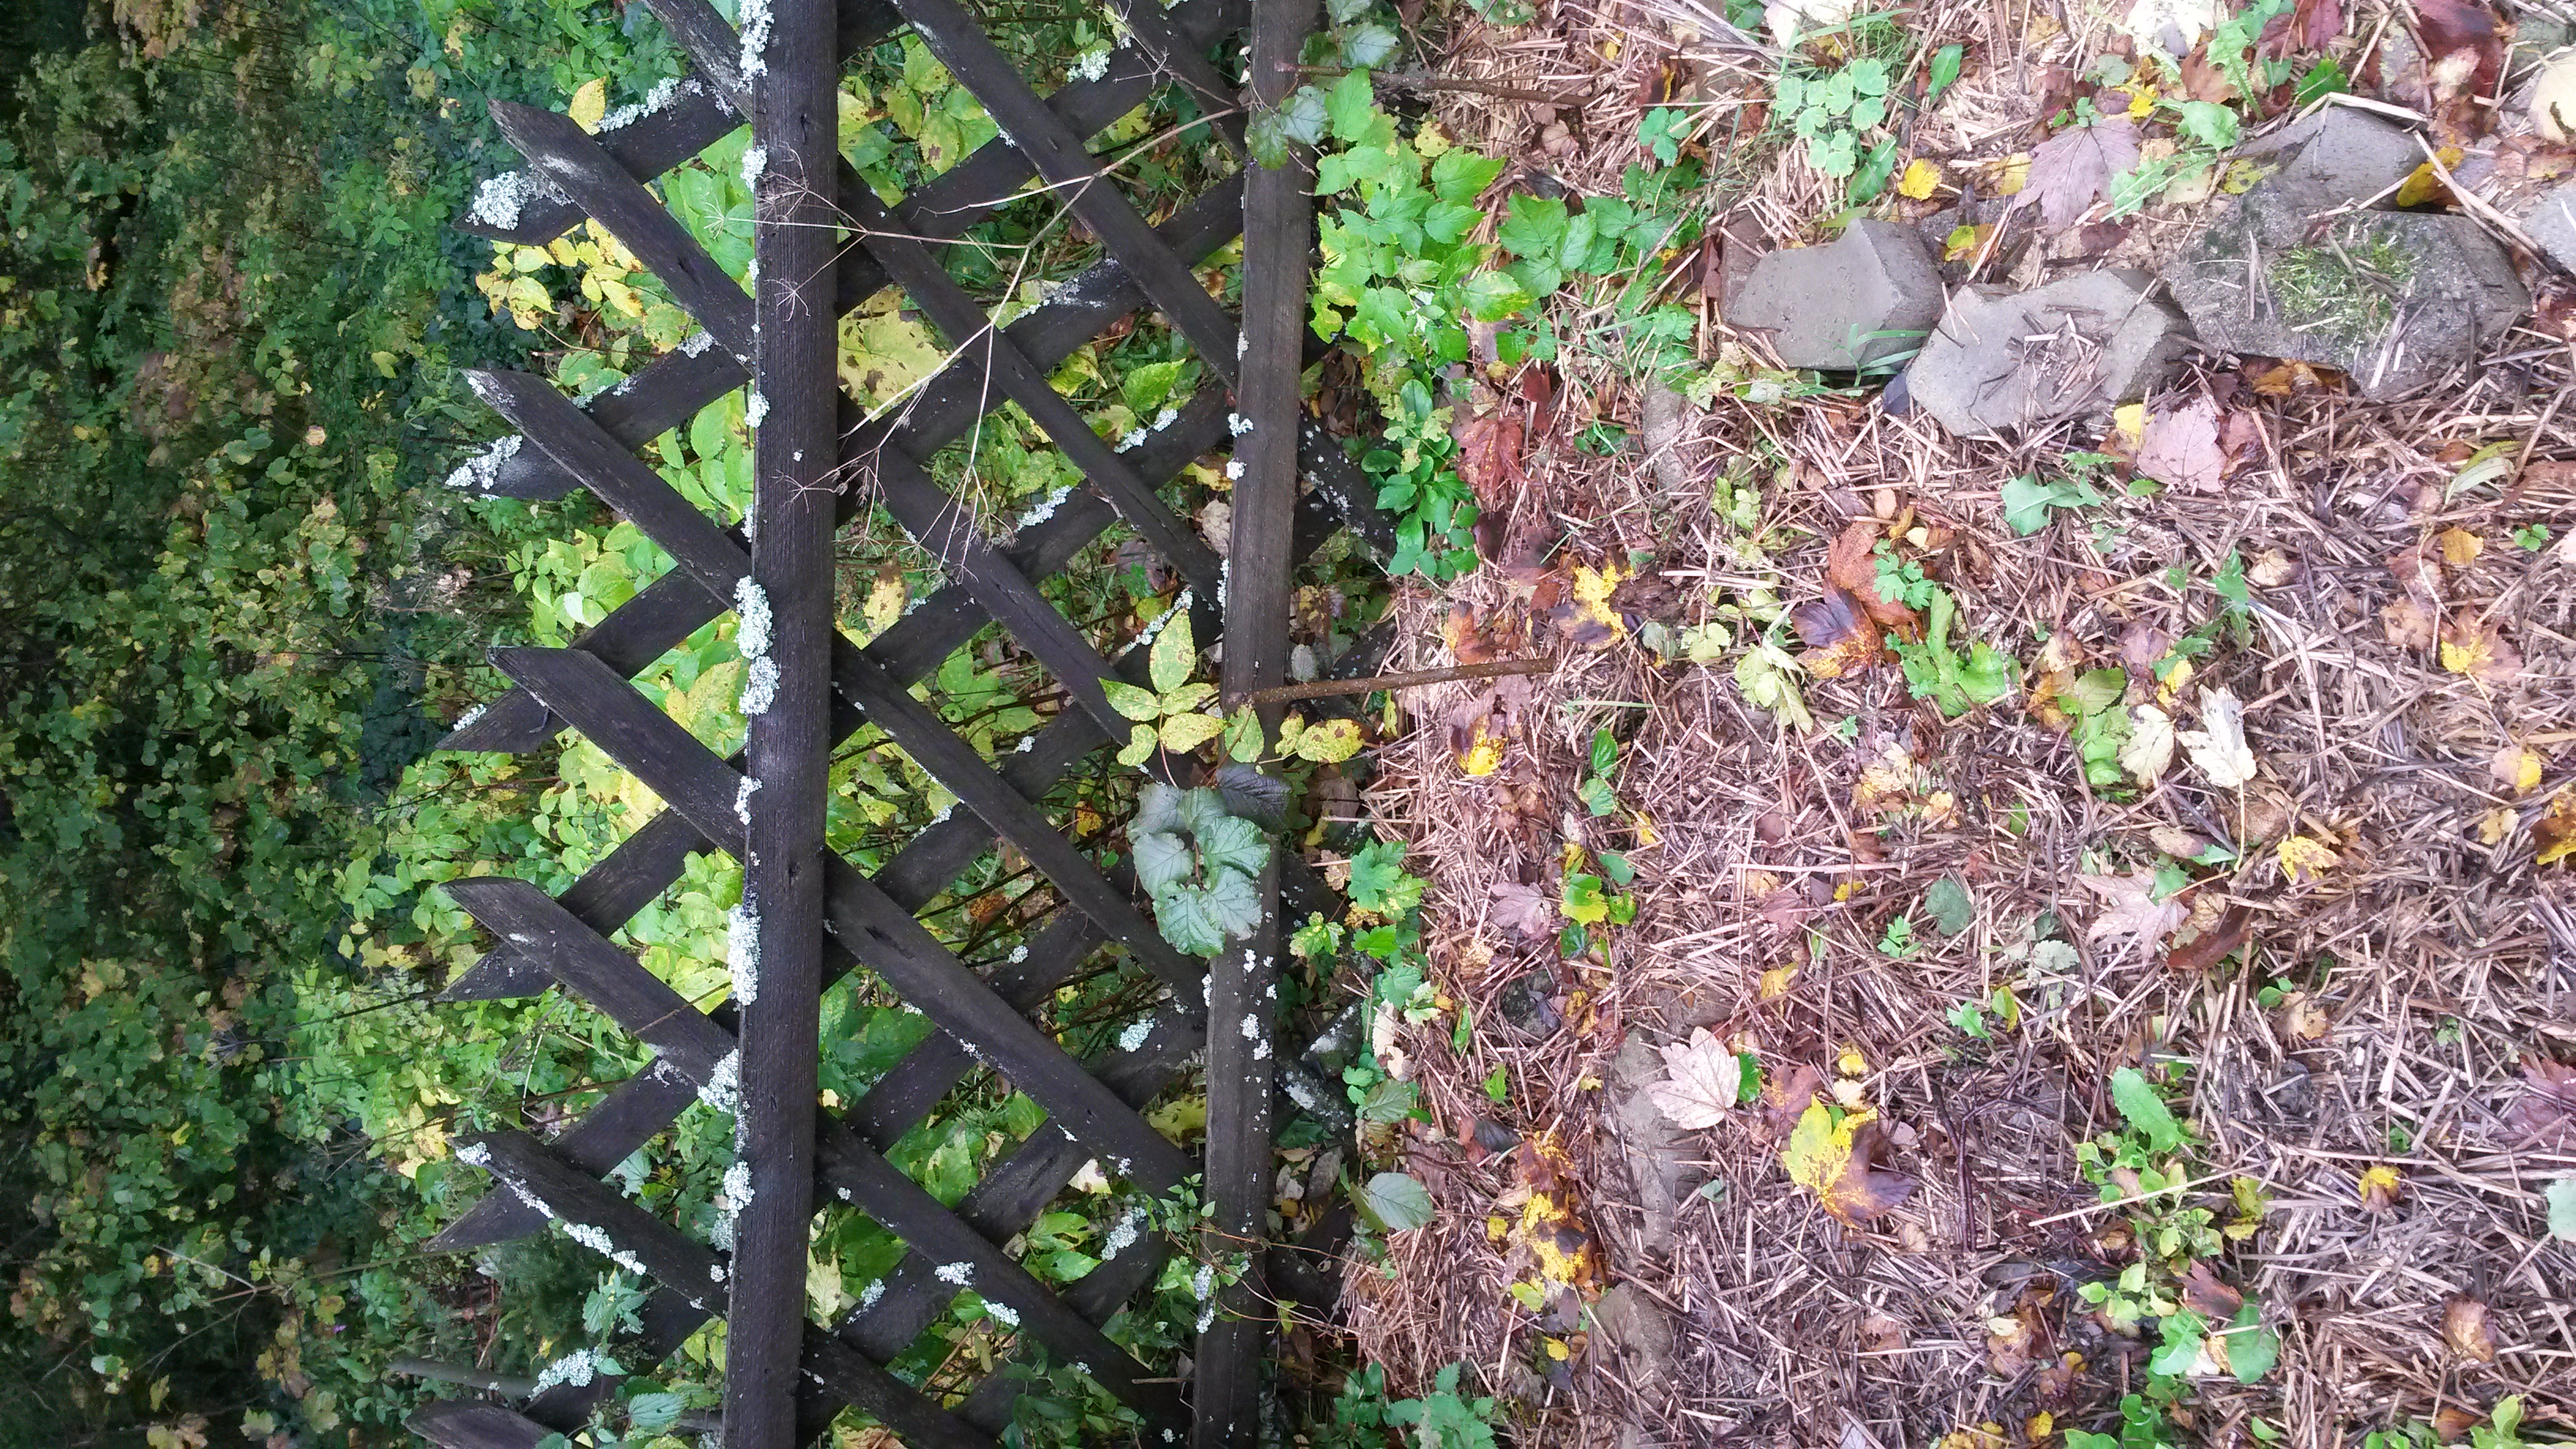 Help me design my living fence fencing forum at permies for Help me design my garden